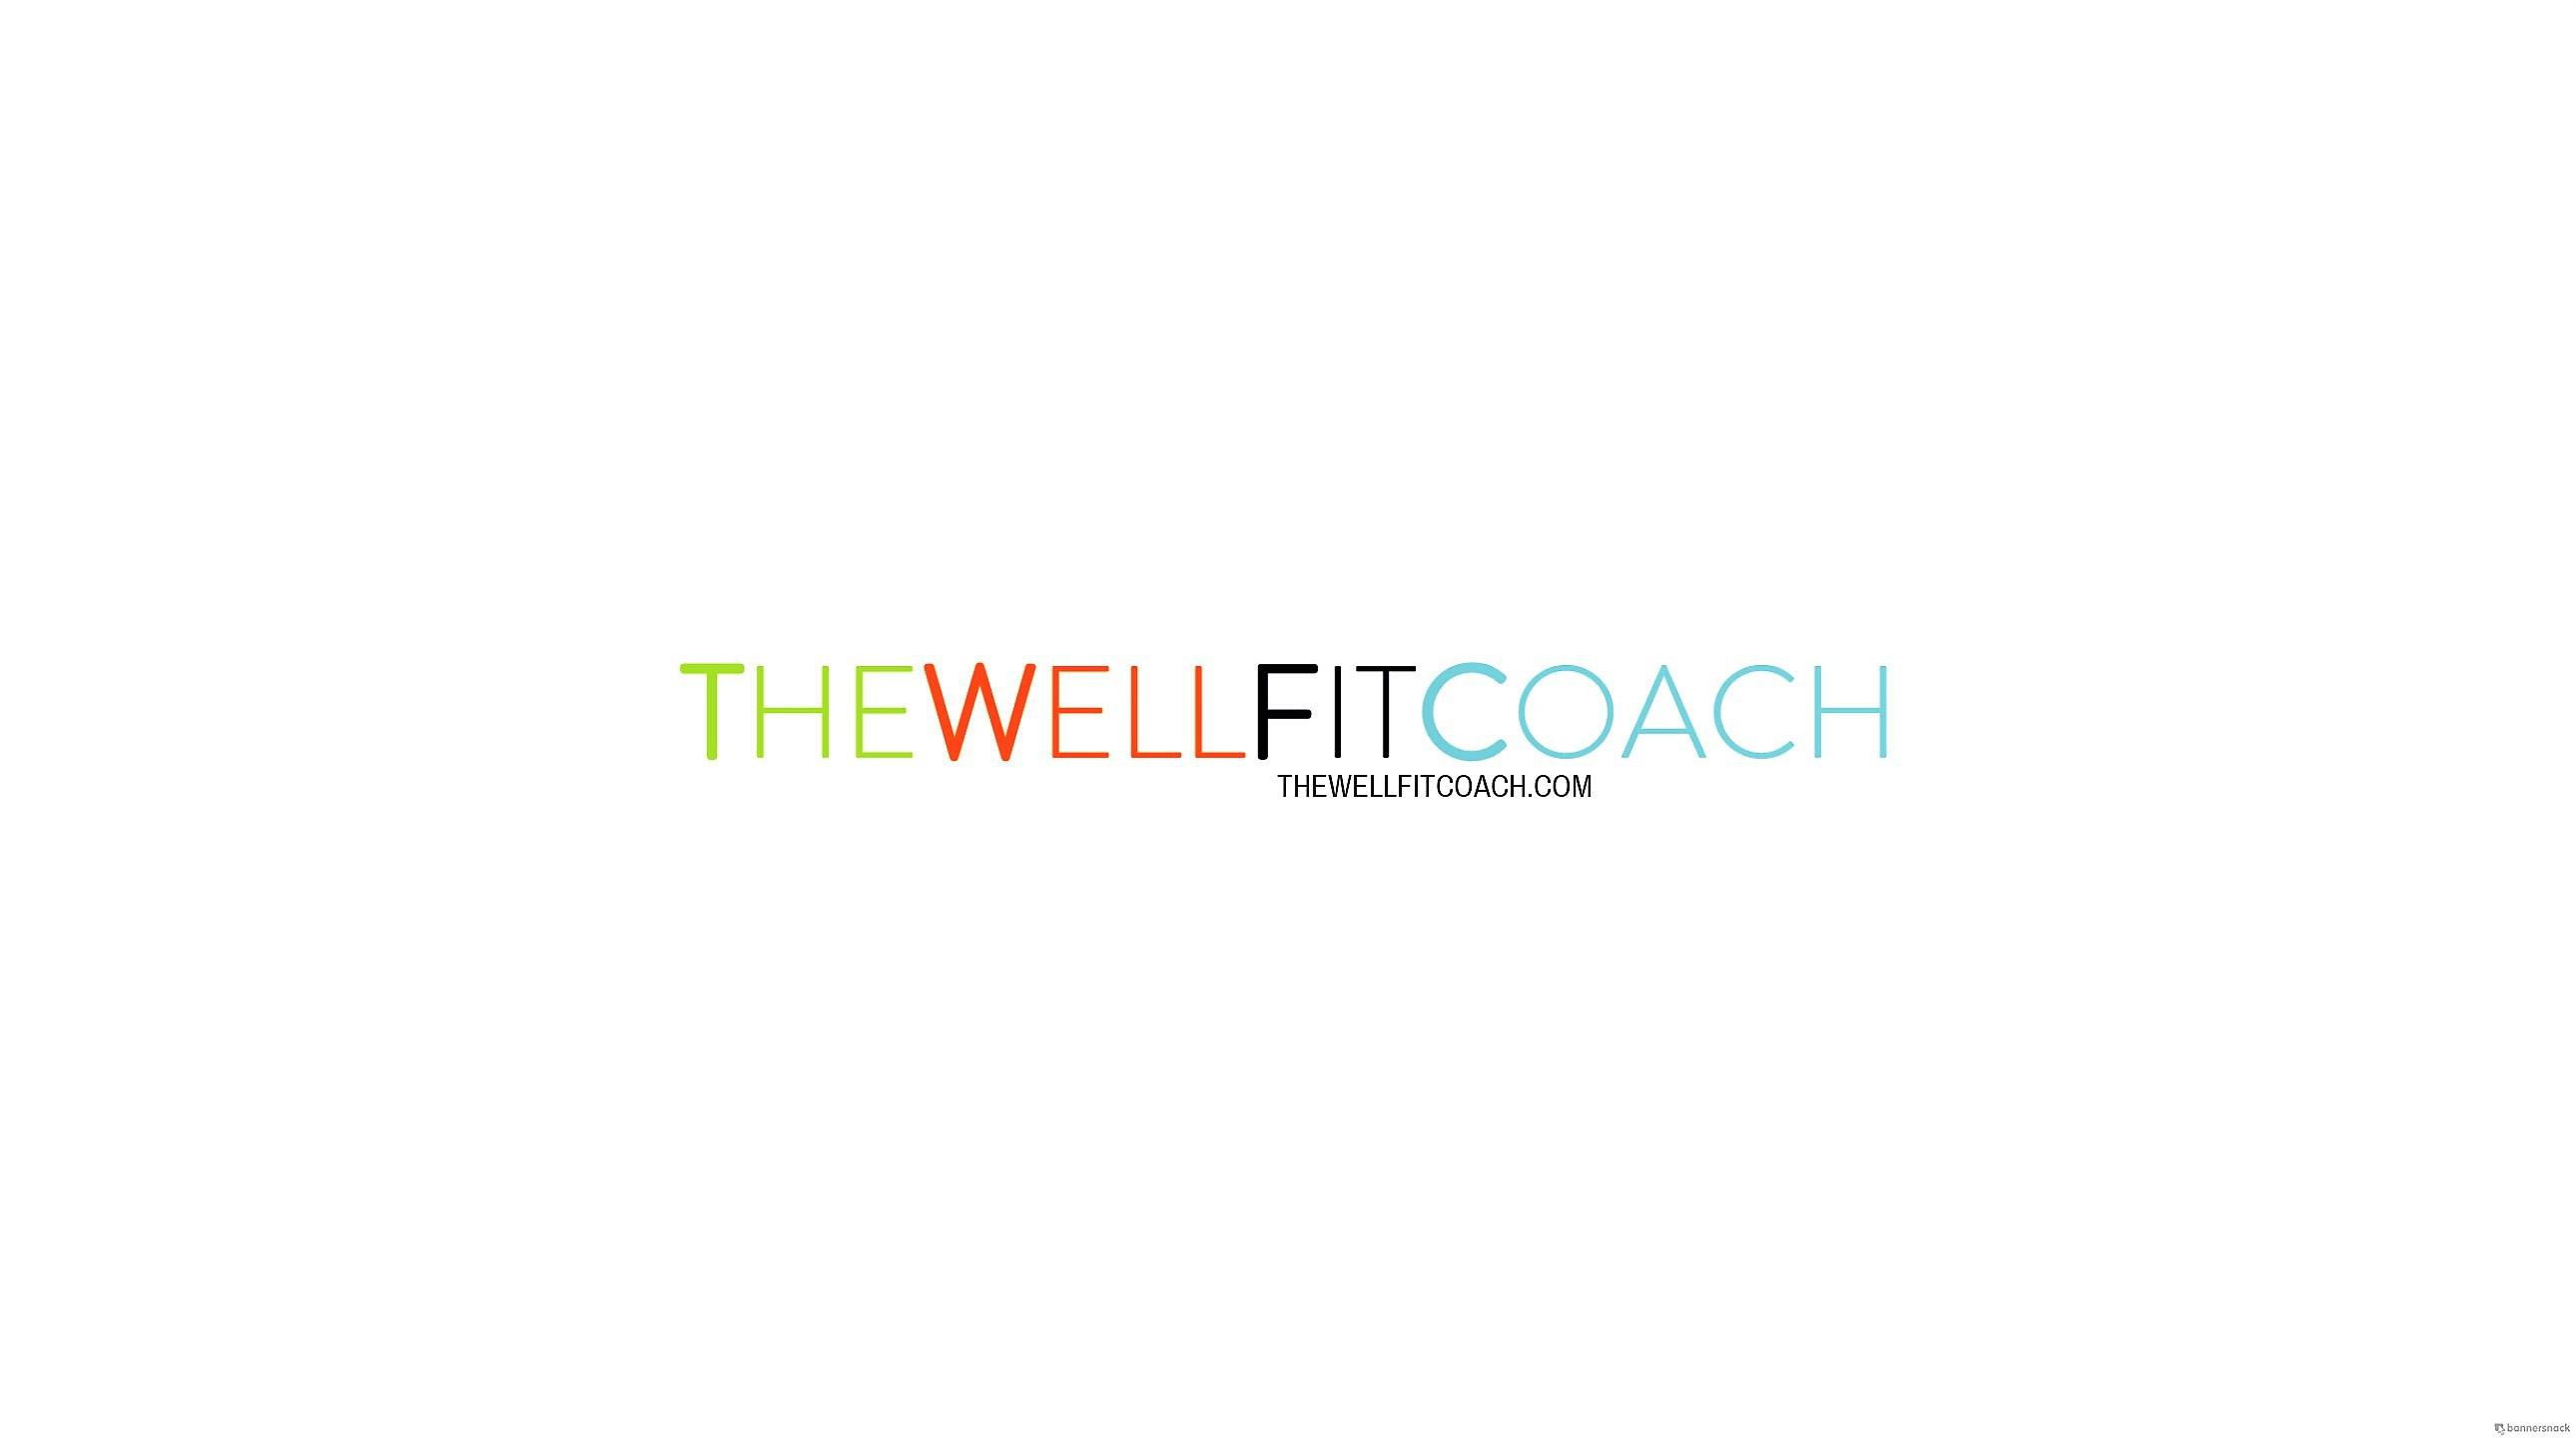 TheWellFitCoach Logo